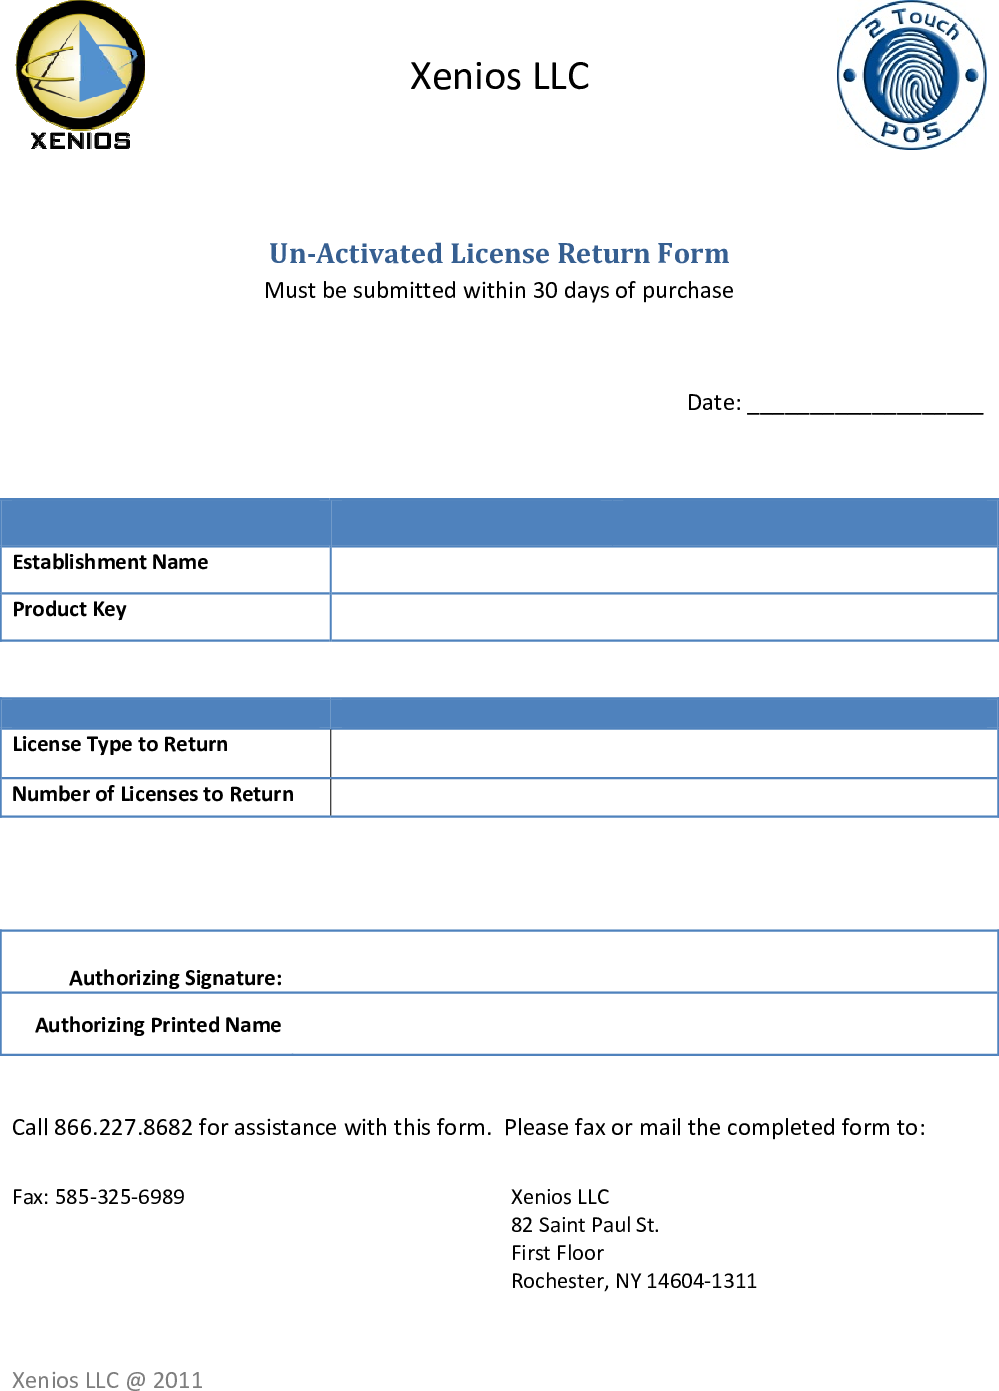 Page 2 of 2 - Un-Activated License Return Form